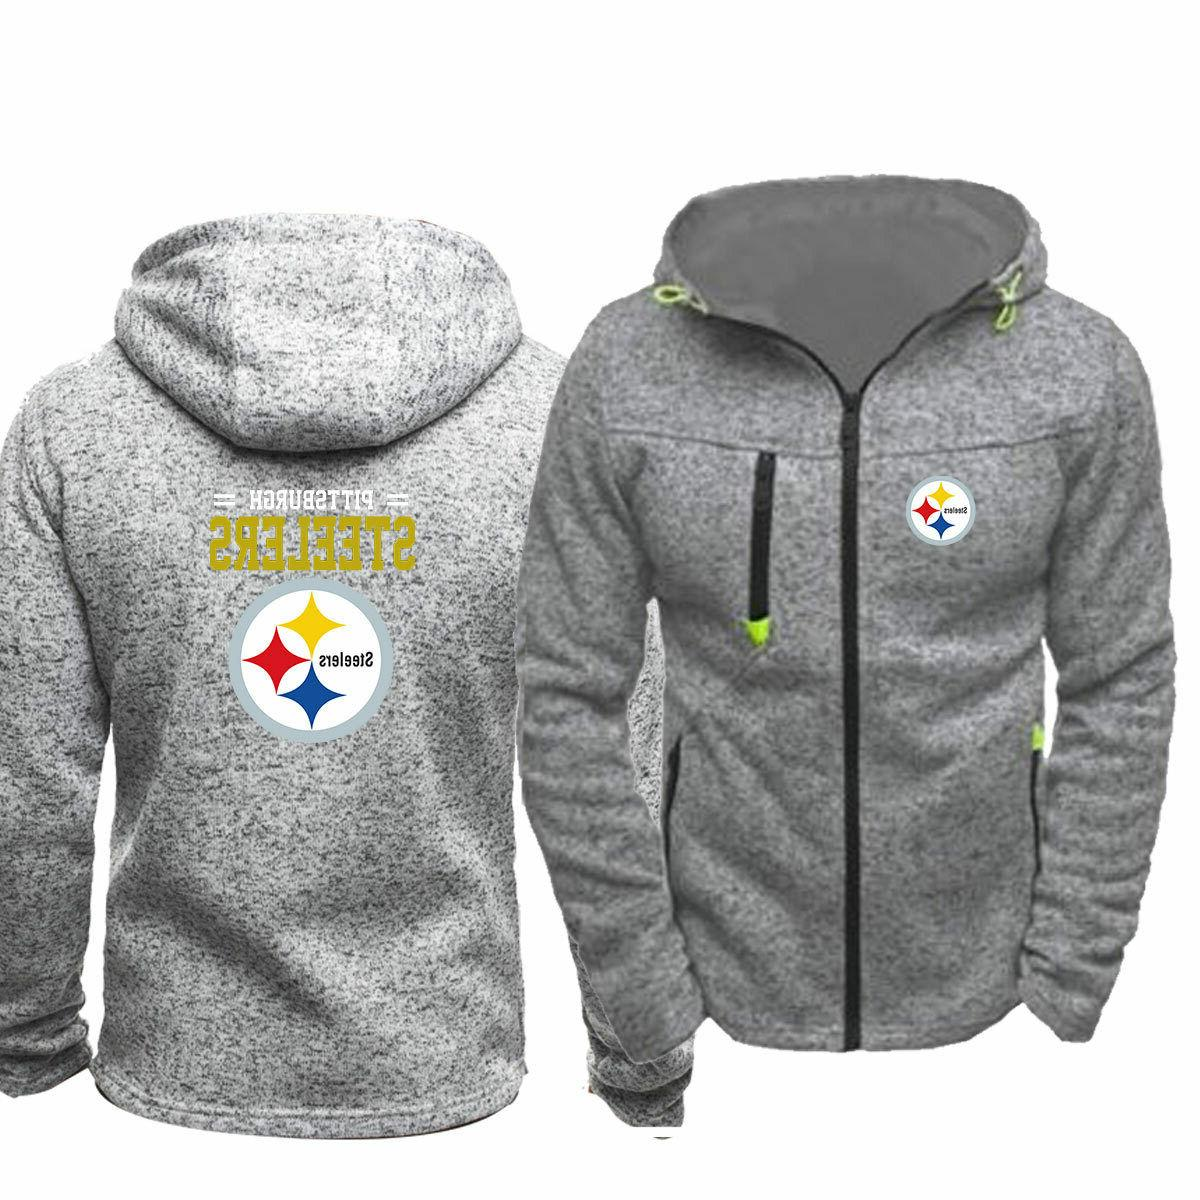 New hot Pittsburgh Fans Jacket Sweater